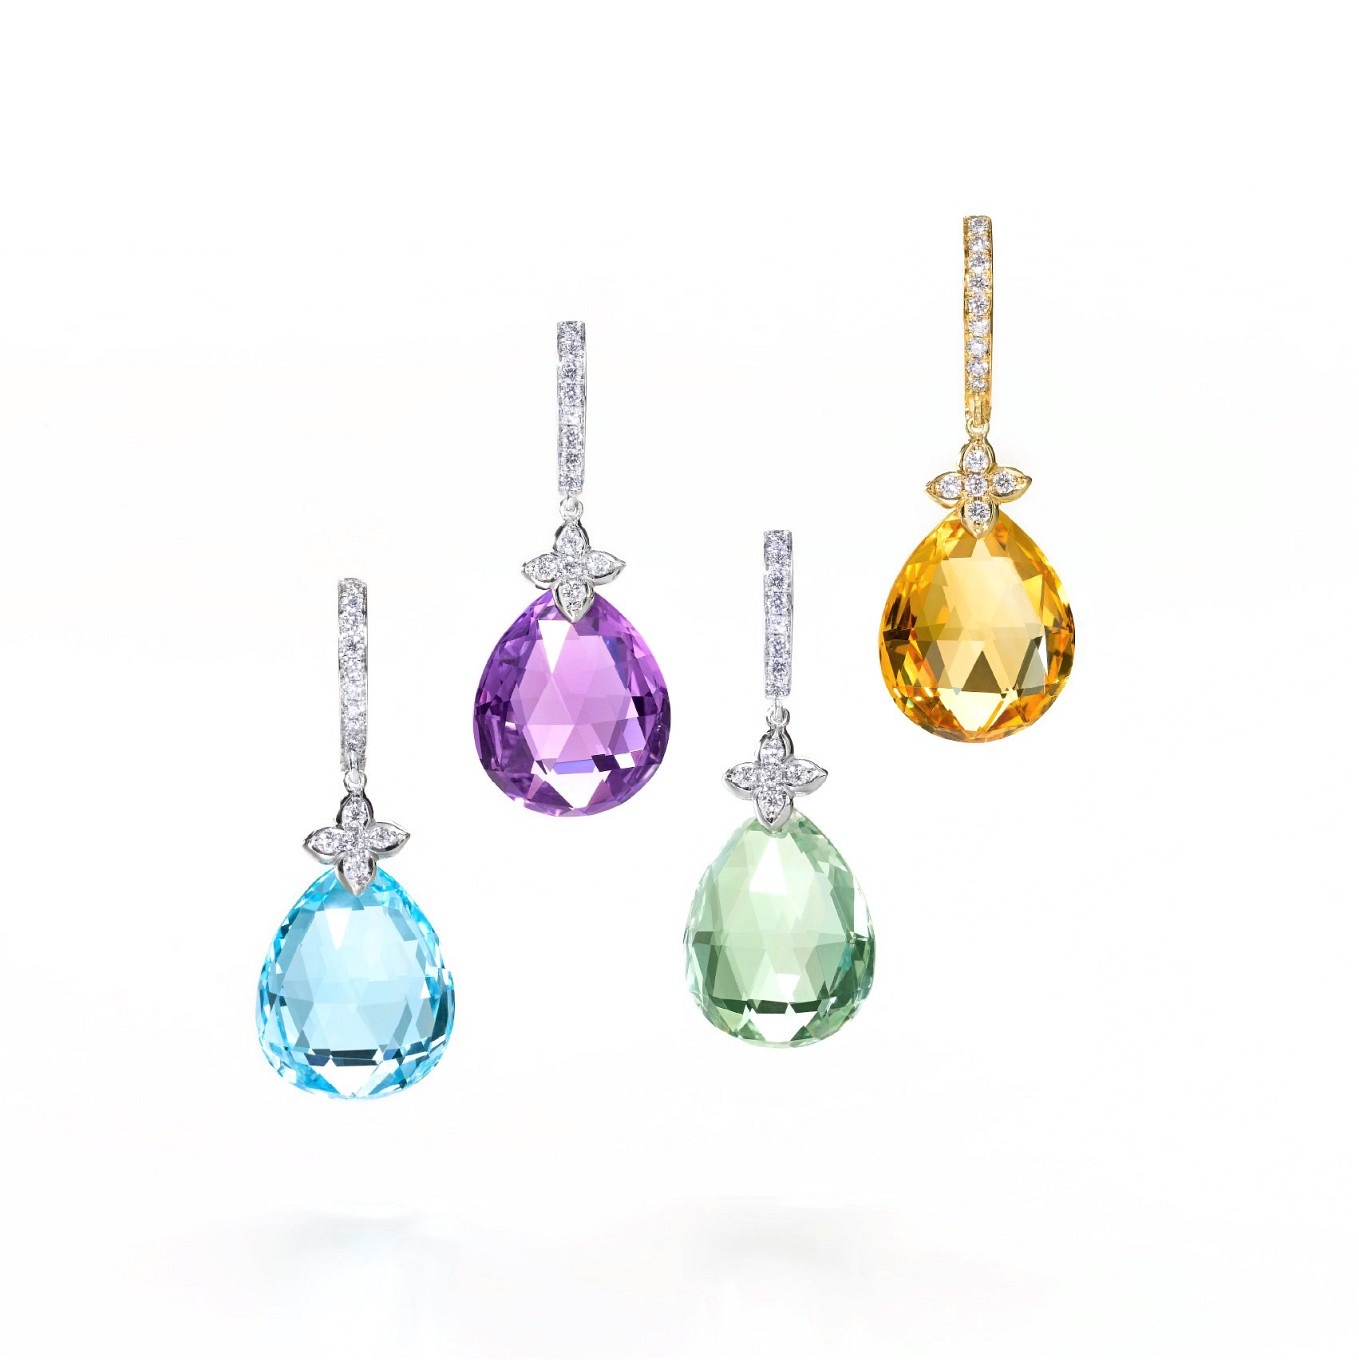 Sevilla gemstone and diamond earrings